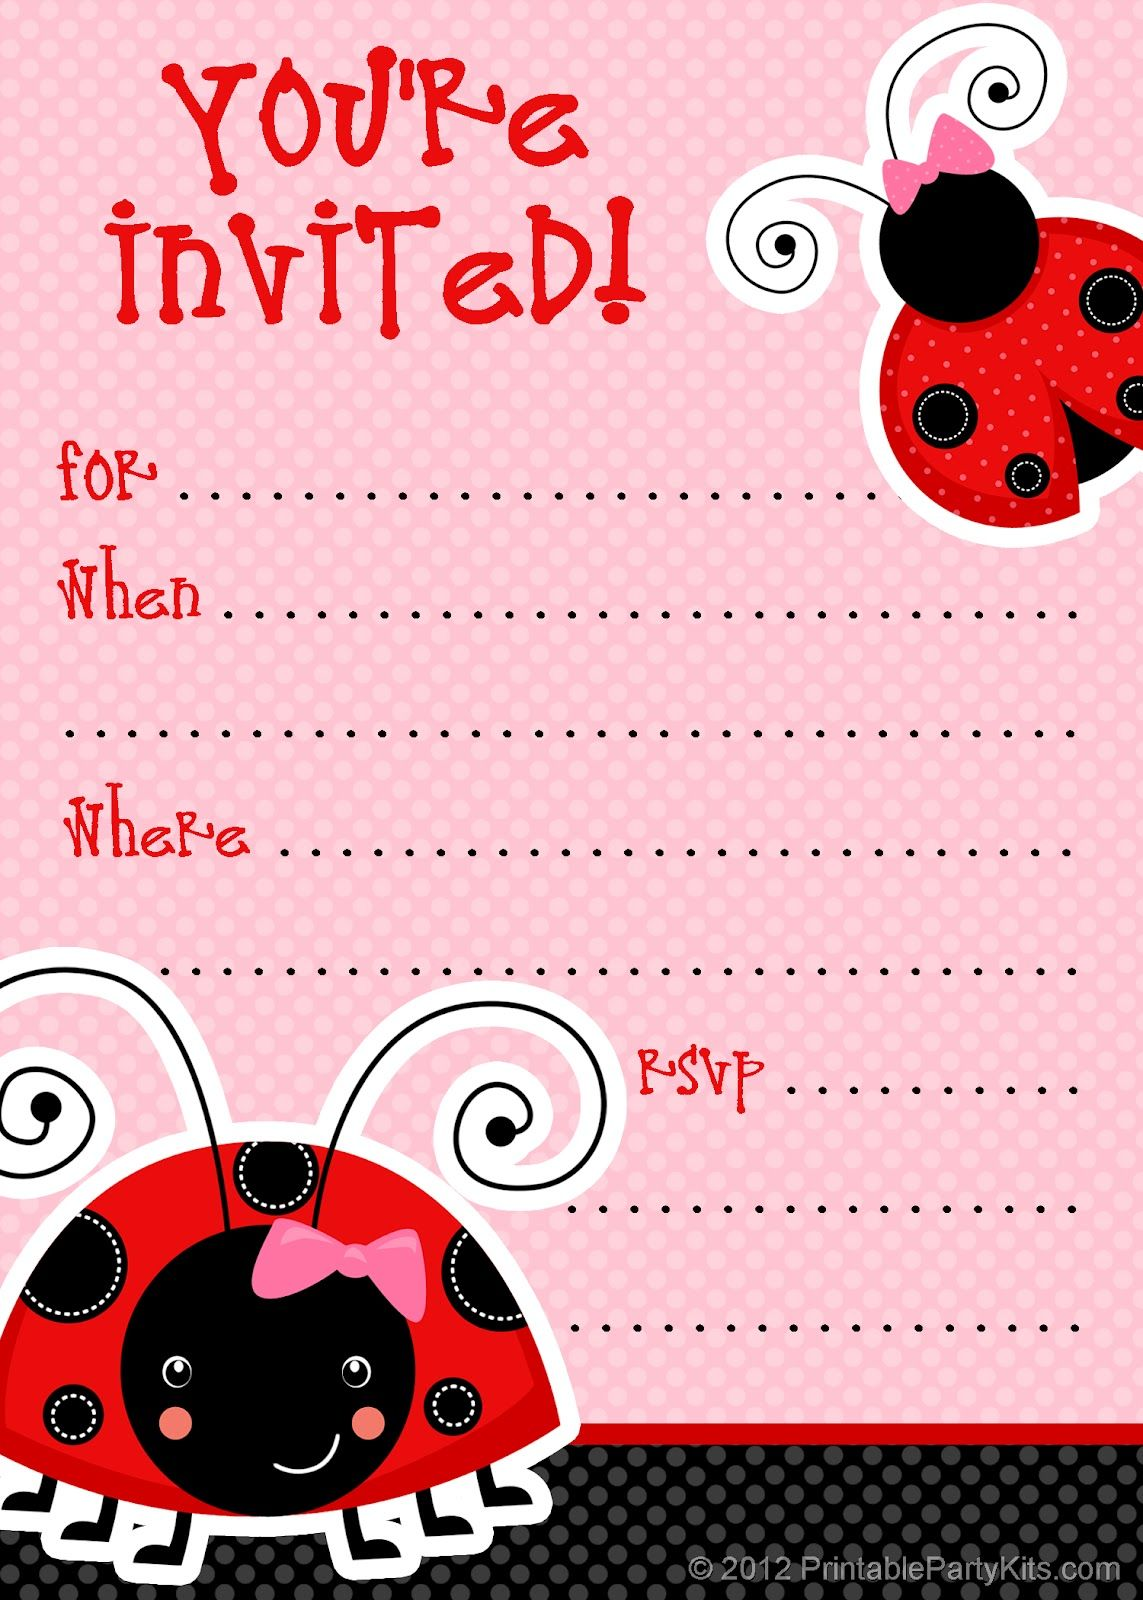 Free Ladybug Party Invitations From PrintablePartyInvitations - Digital birthday invitation template